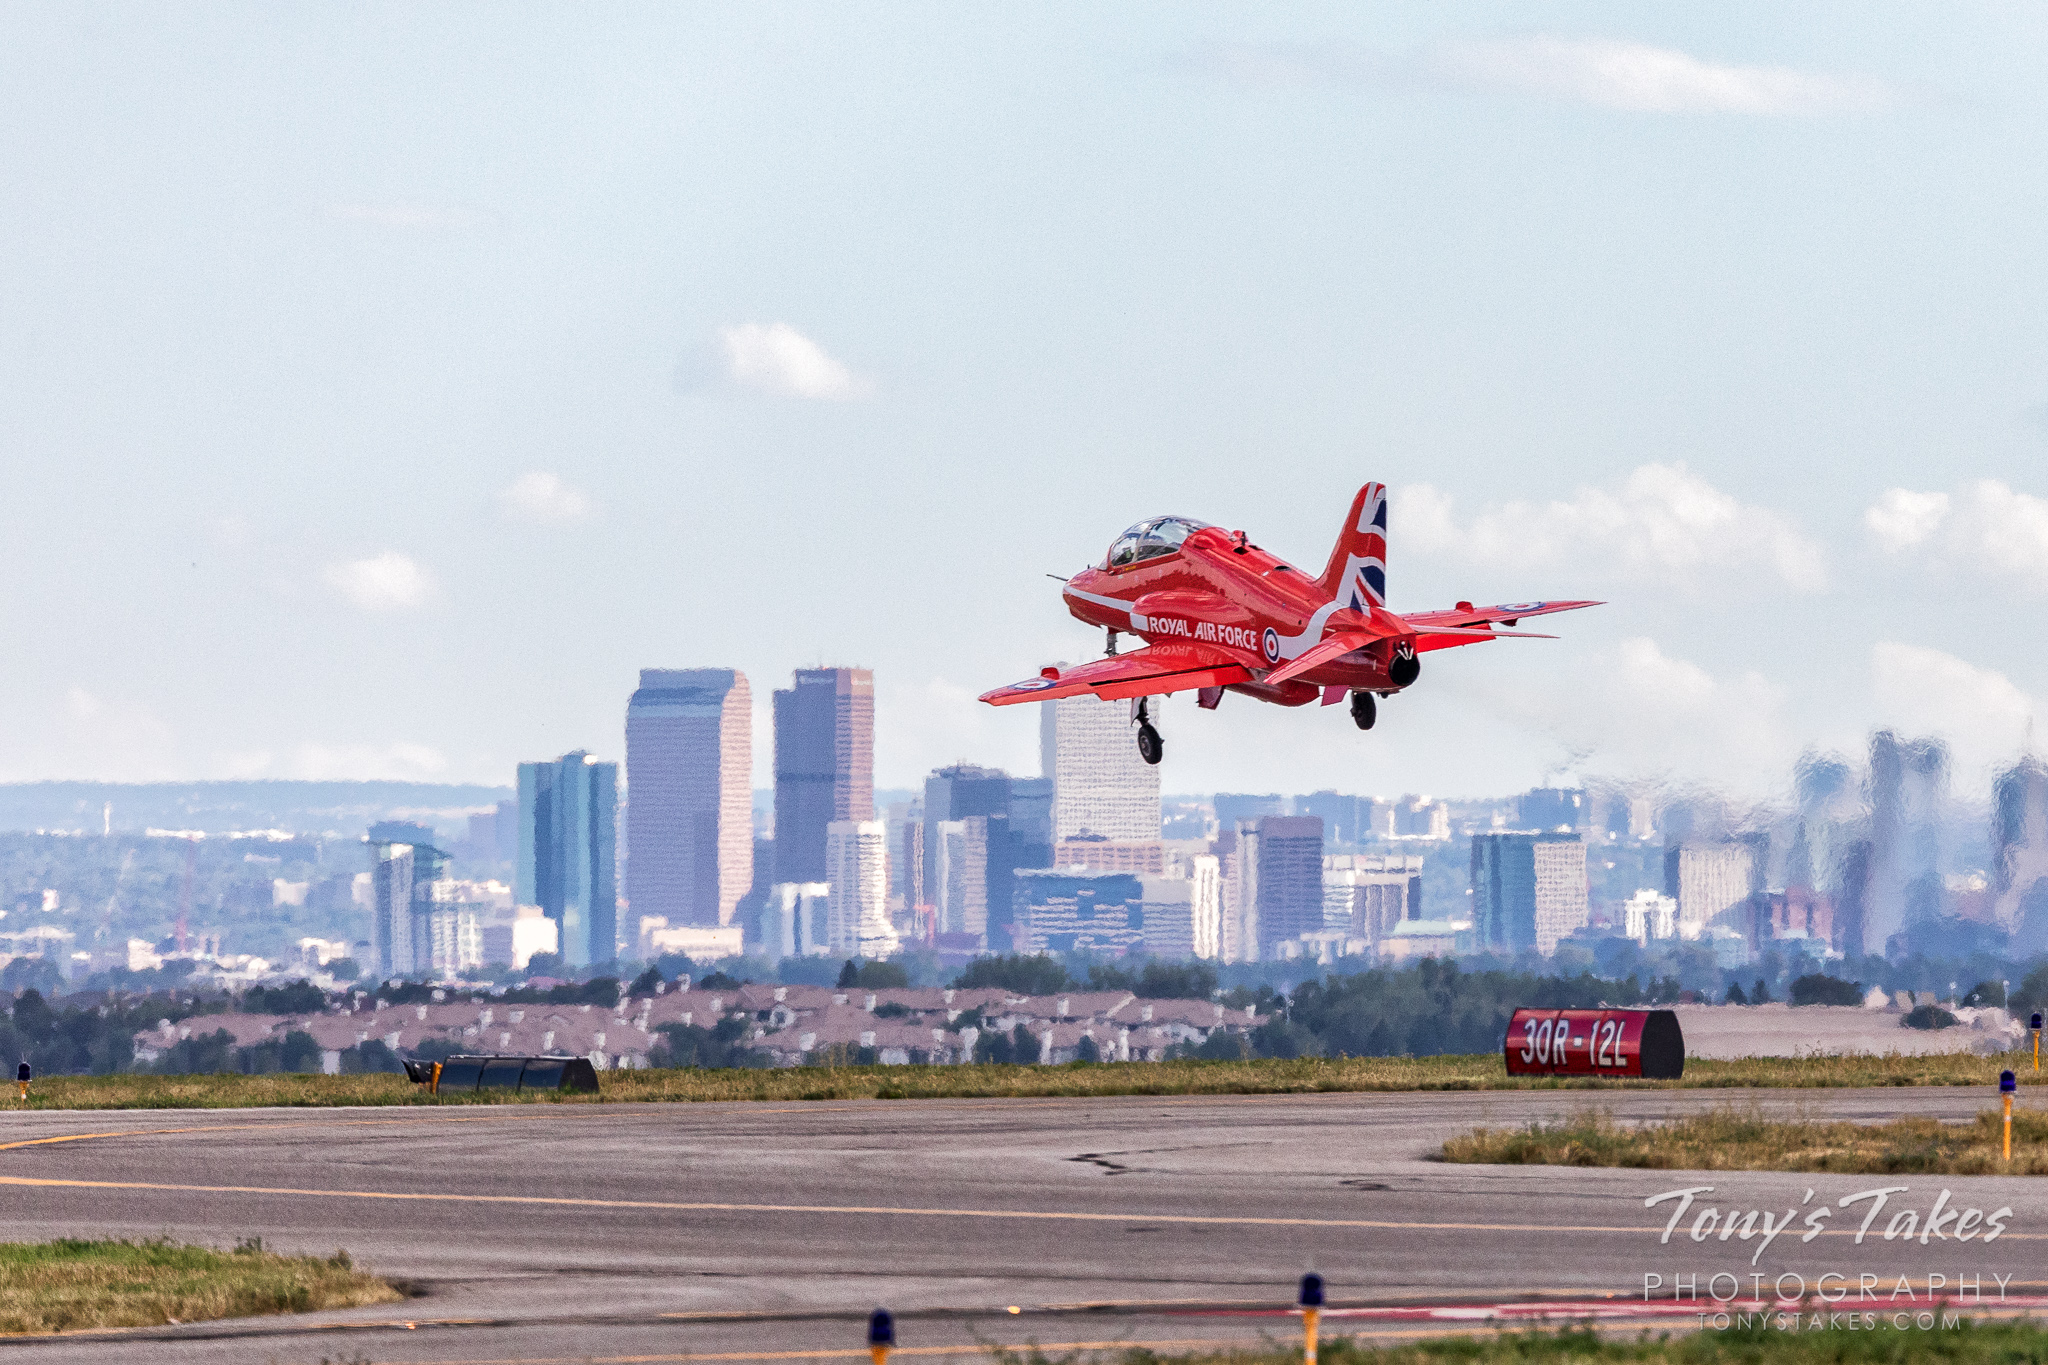 A different kind of British invasion as the Red Arrows visit Denver